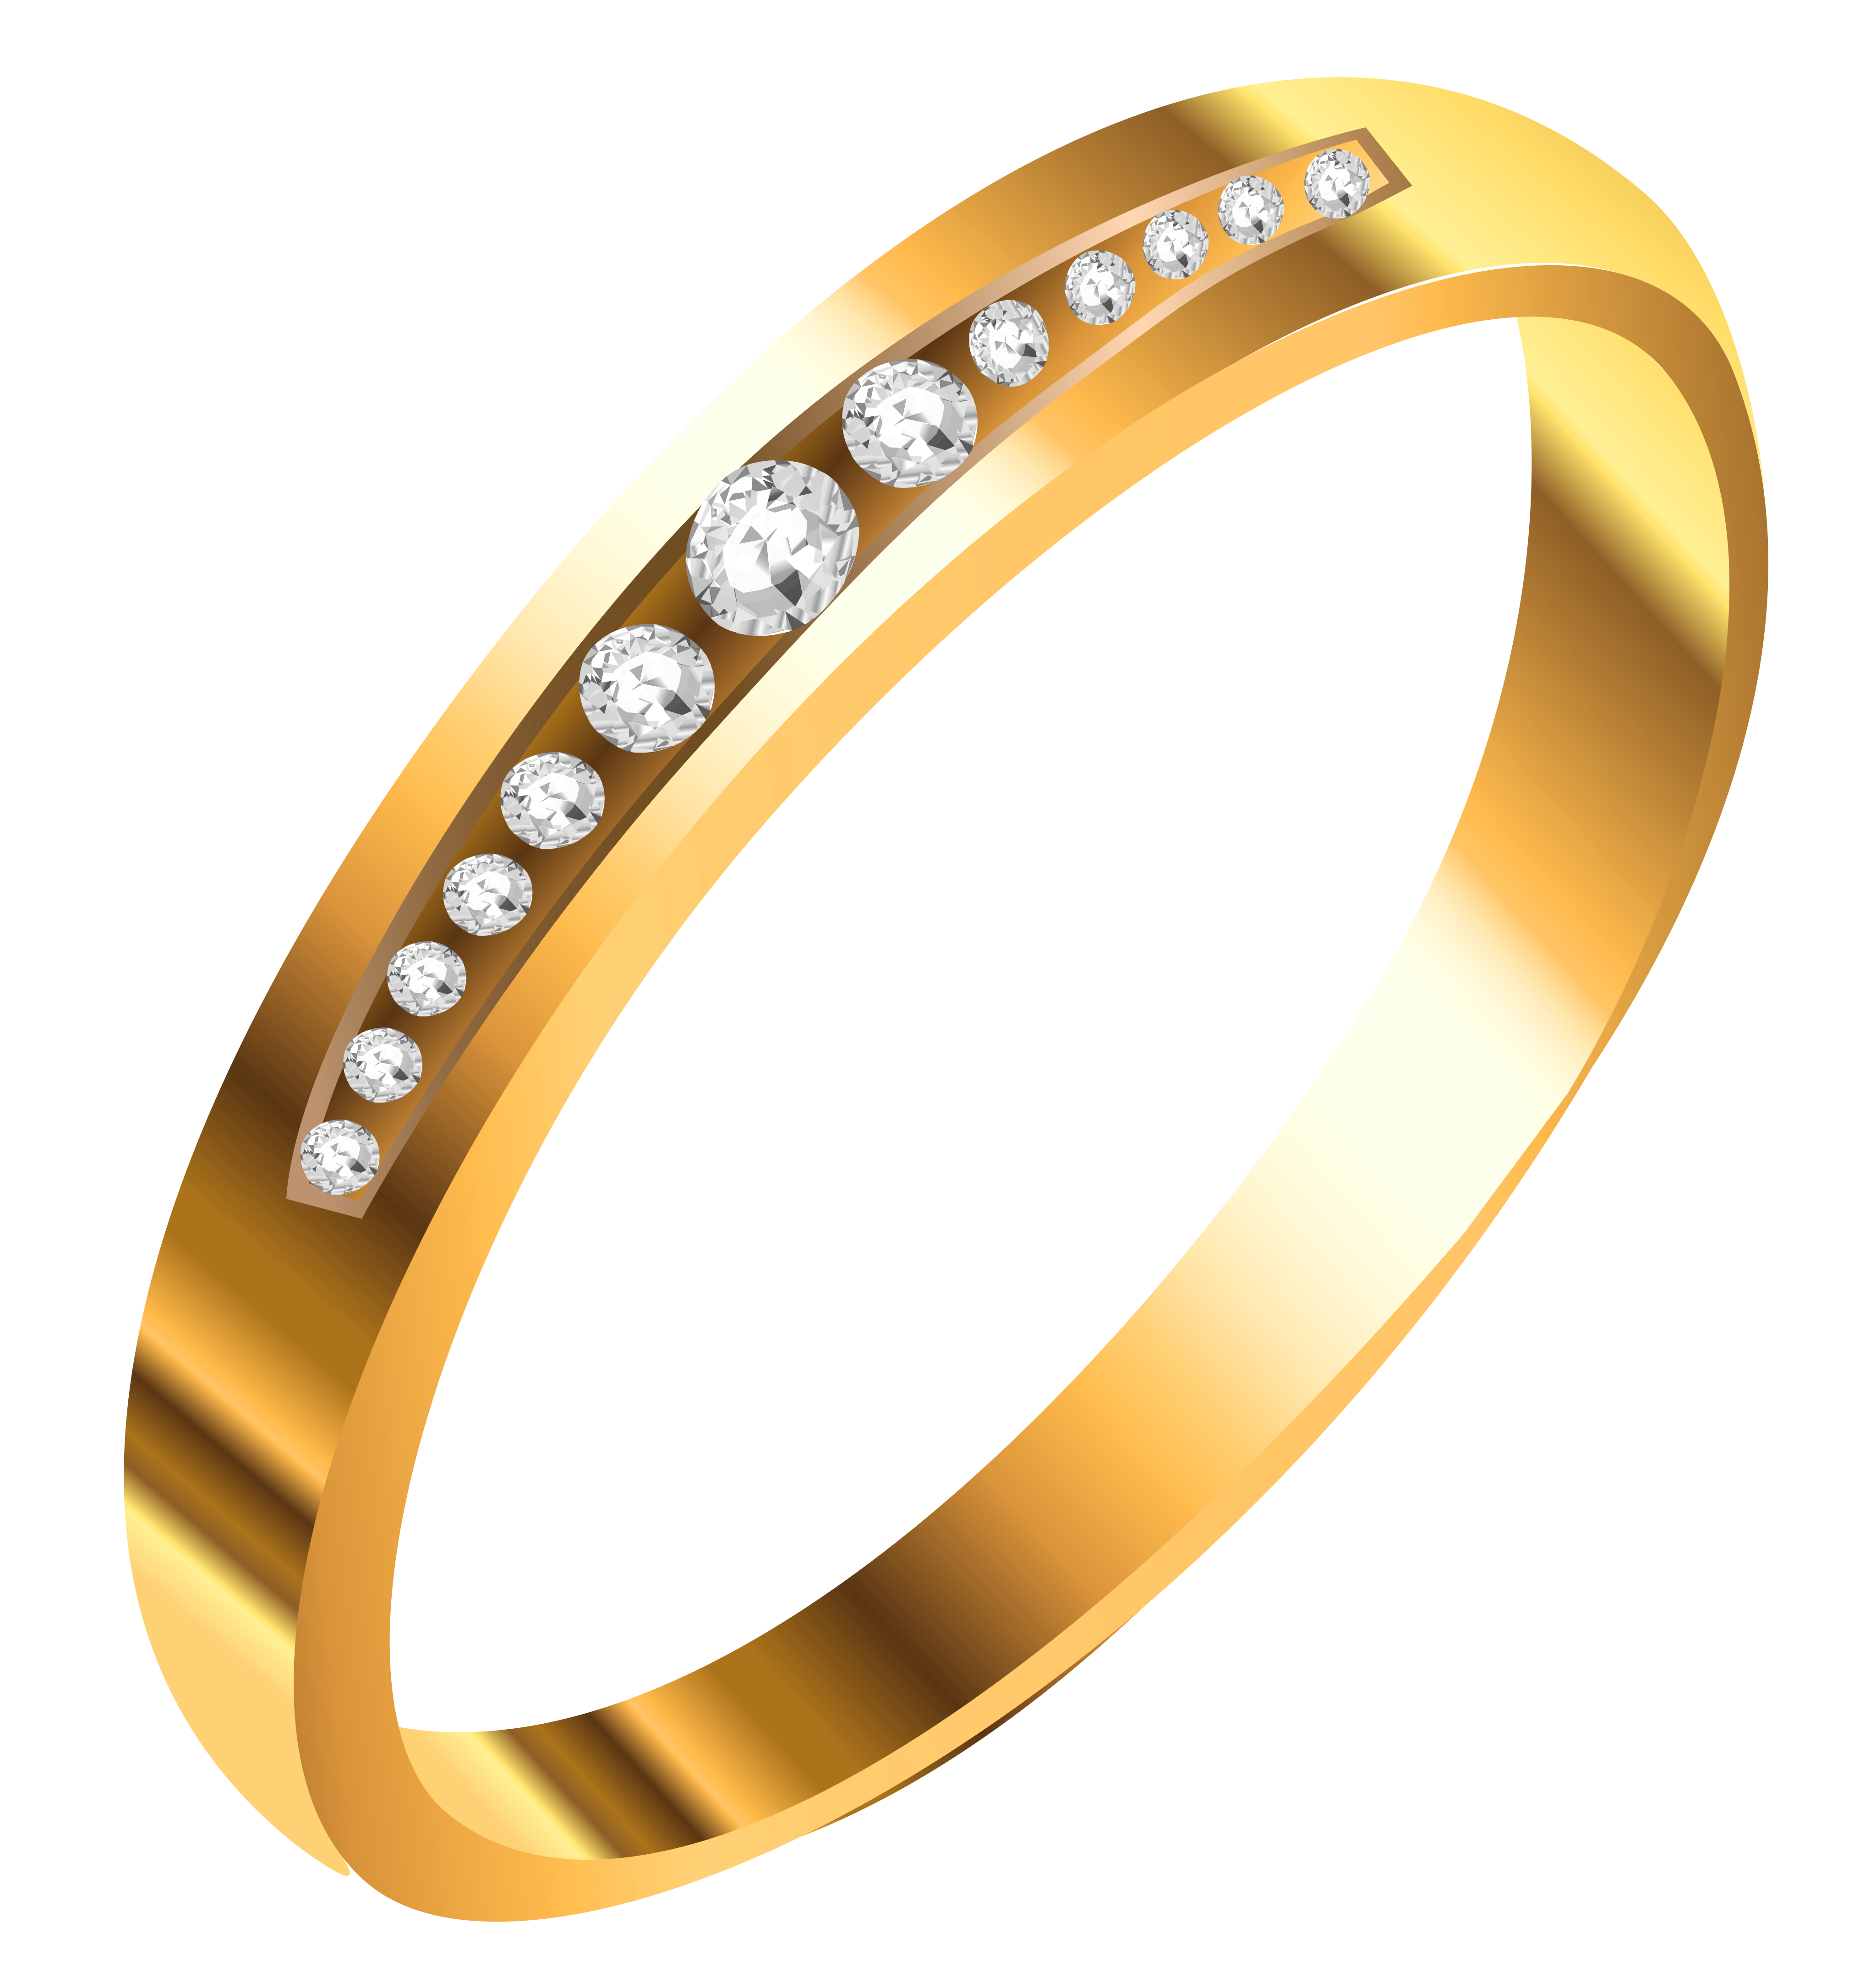 Gold Ring with Diamonds PNG Clipart.